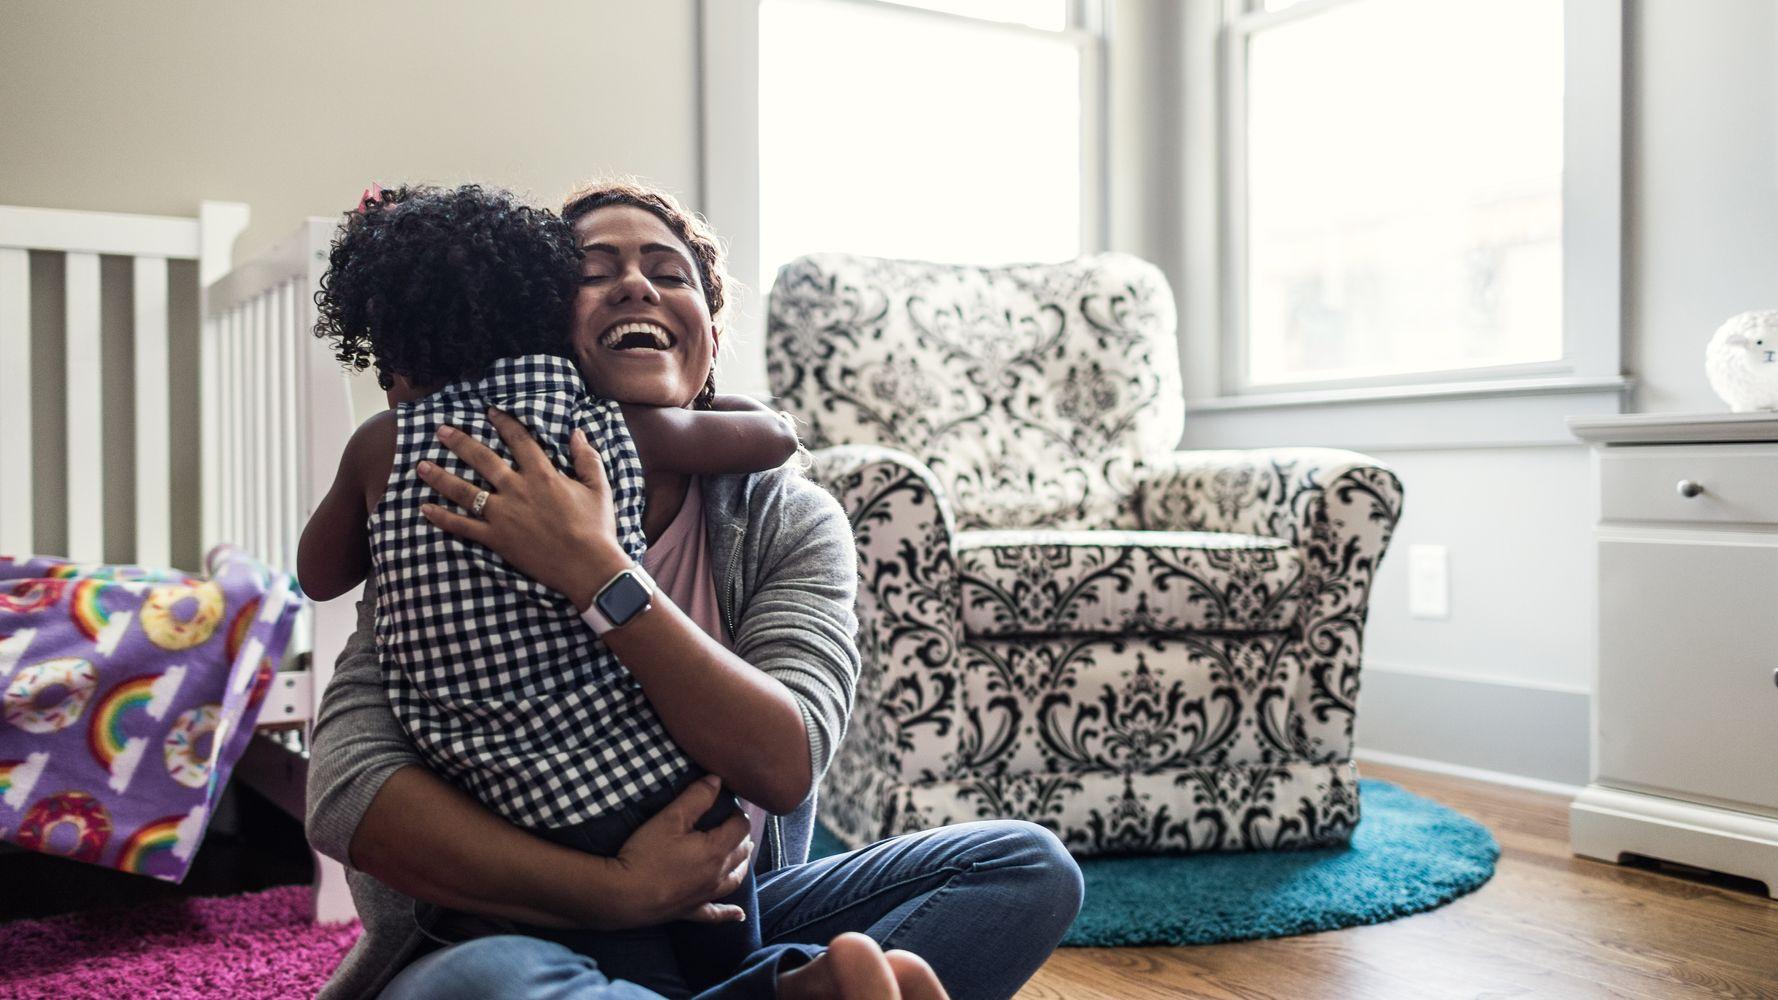 5 Easy Ways To Be A More Mindful Parent